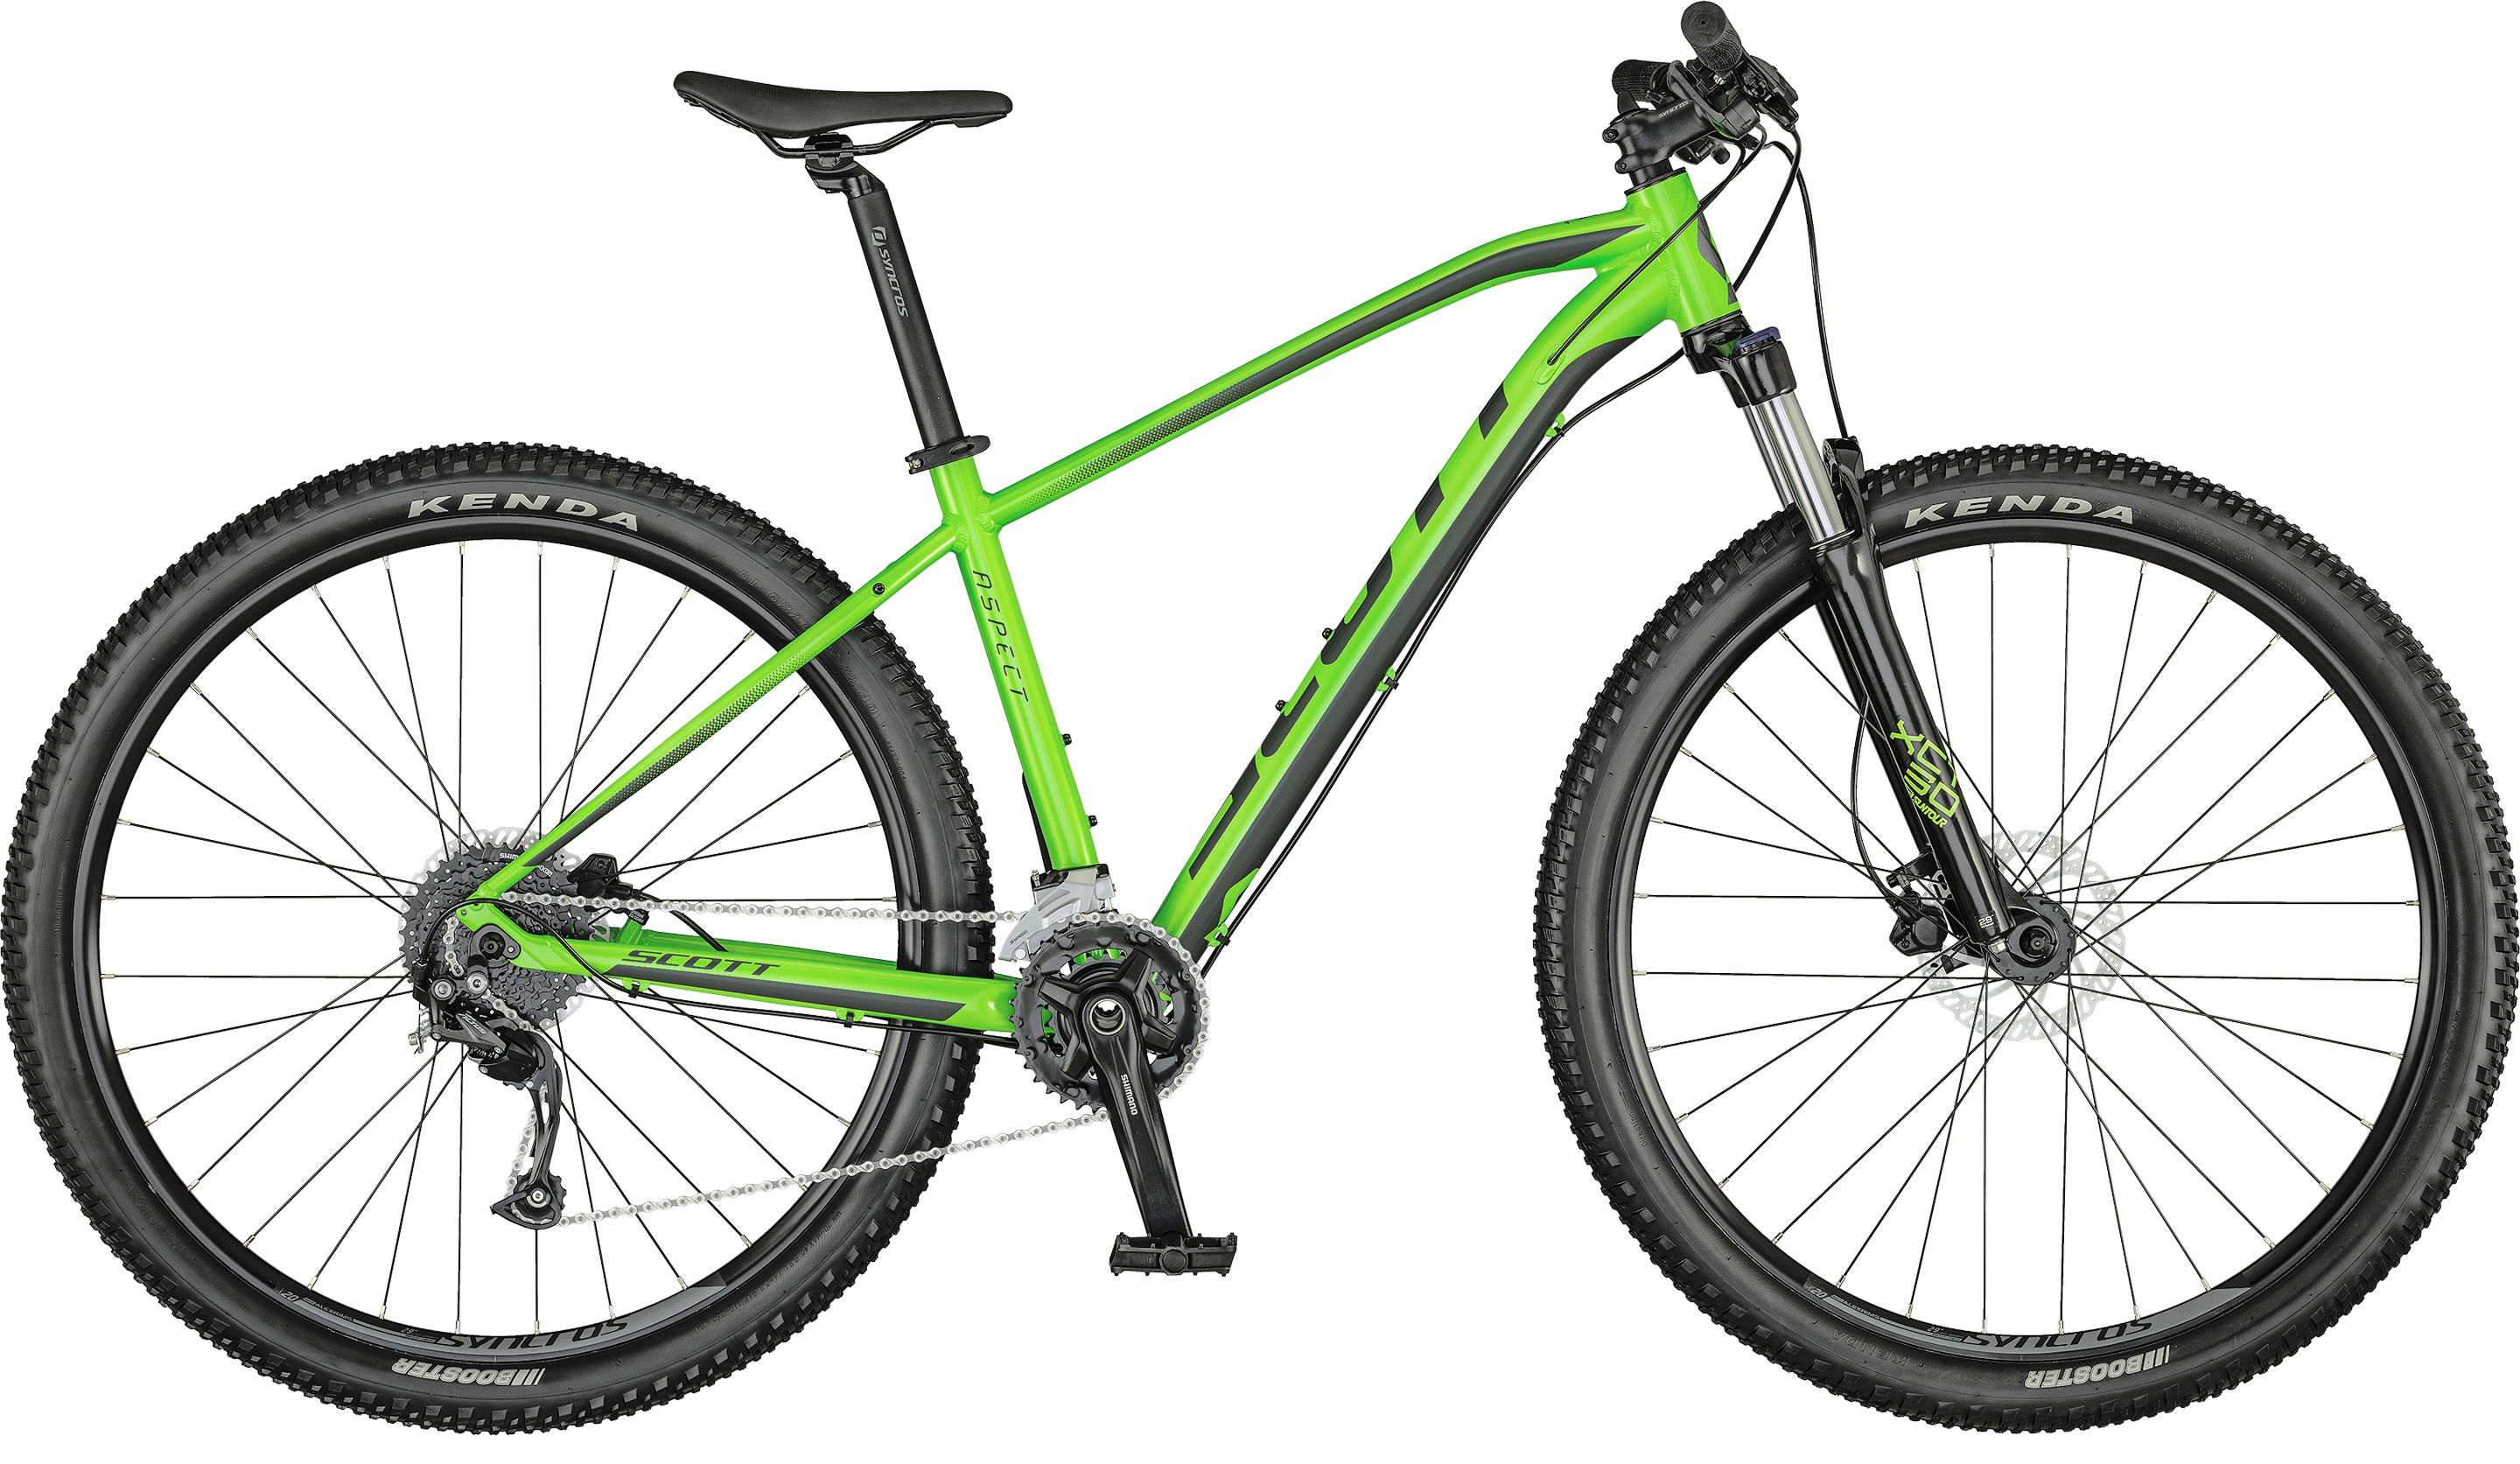 Aspect 750 smith green | Culture Vélo